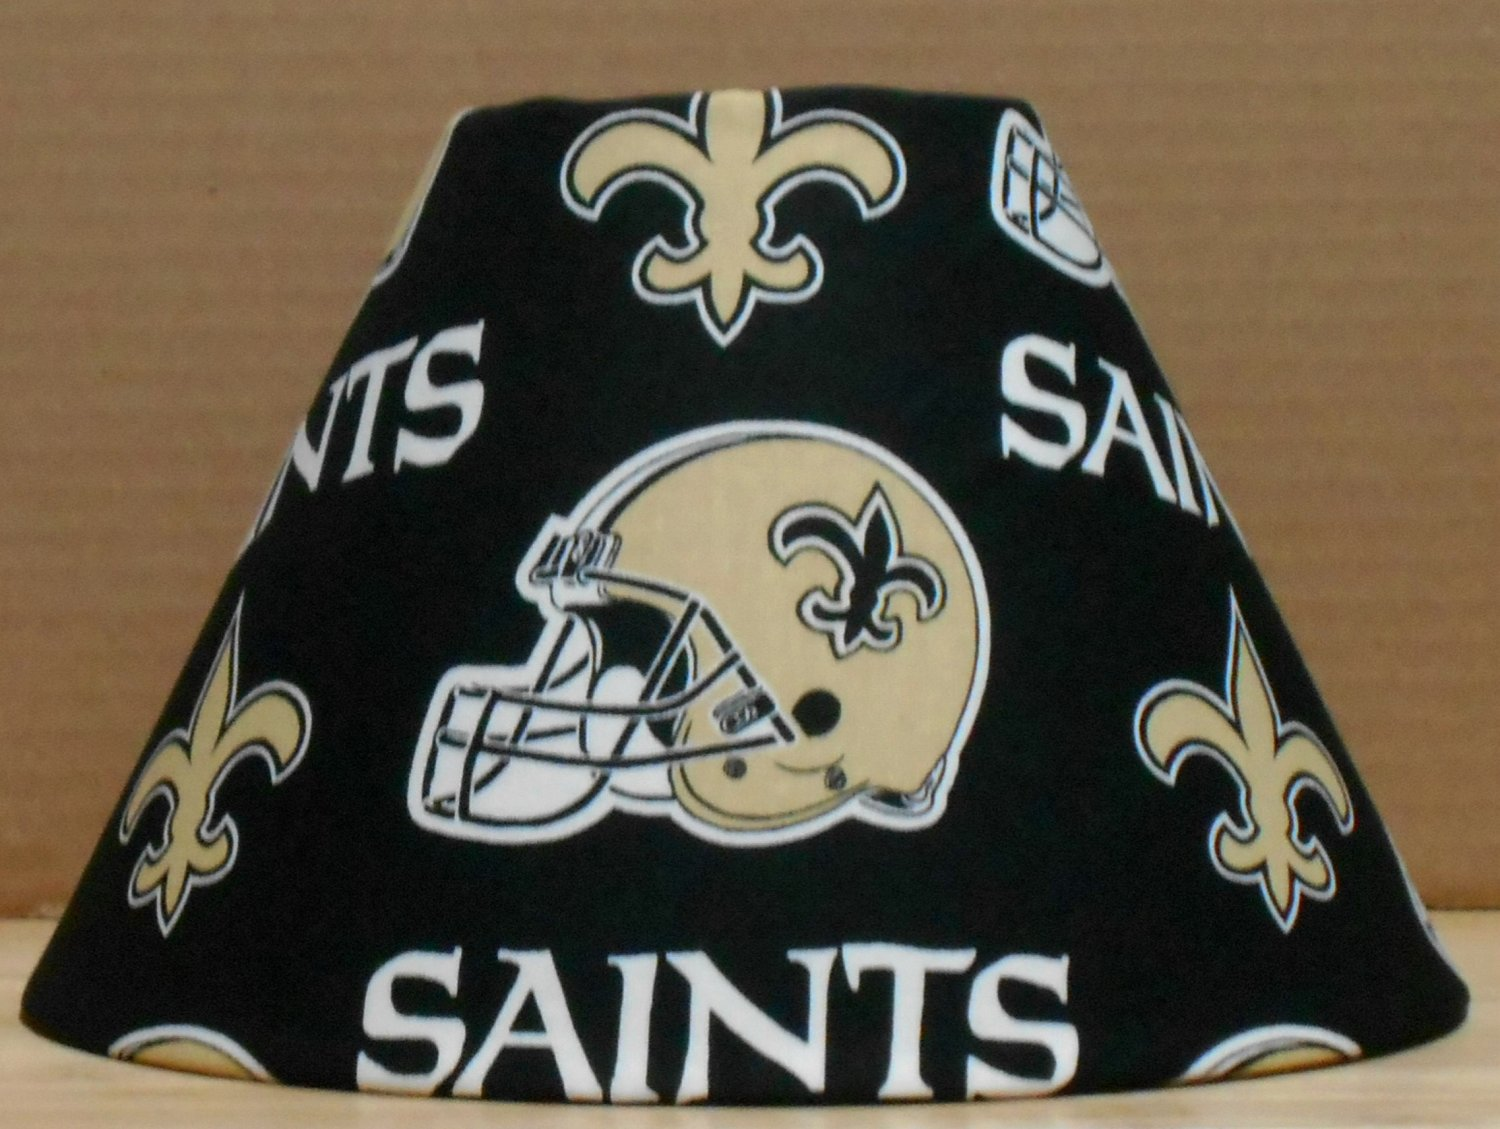 New orleans saints fabric lamp shade lampshade sports nfl football new orleans saints fabric lamp shade lampshade sports nfl football handmade desk table mozeypictures Images